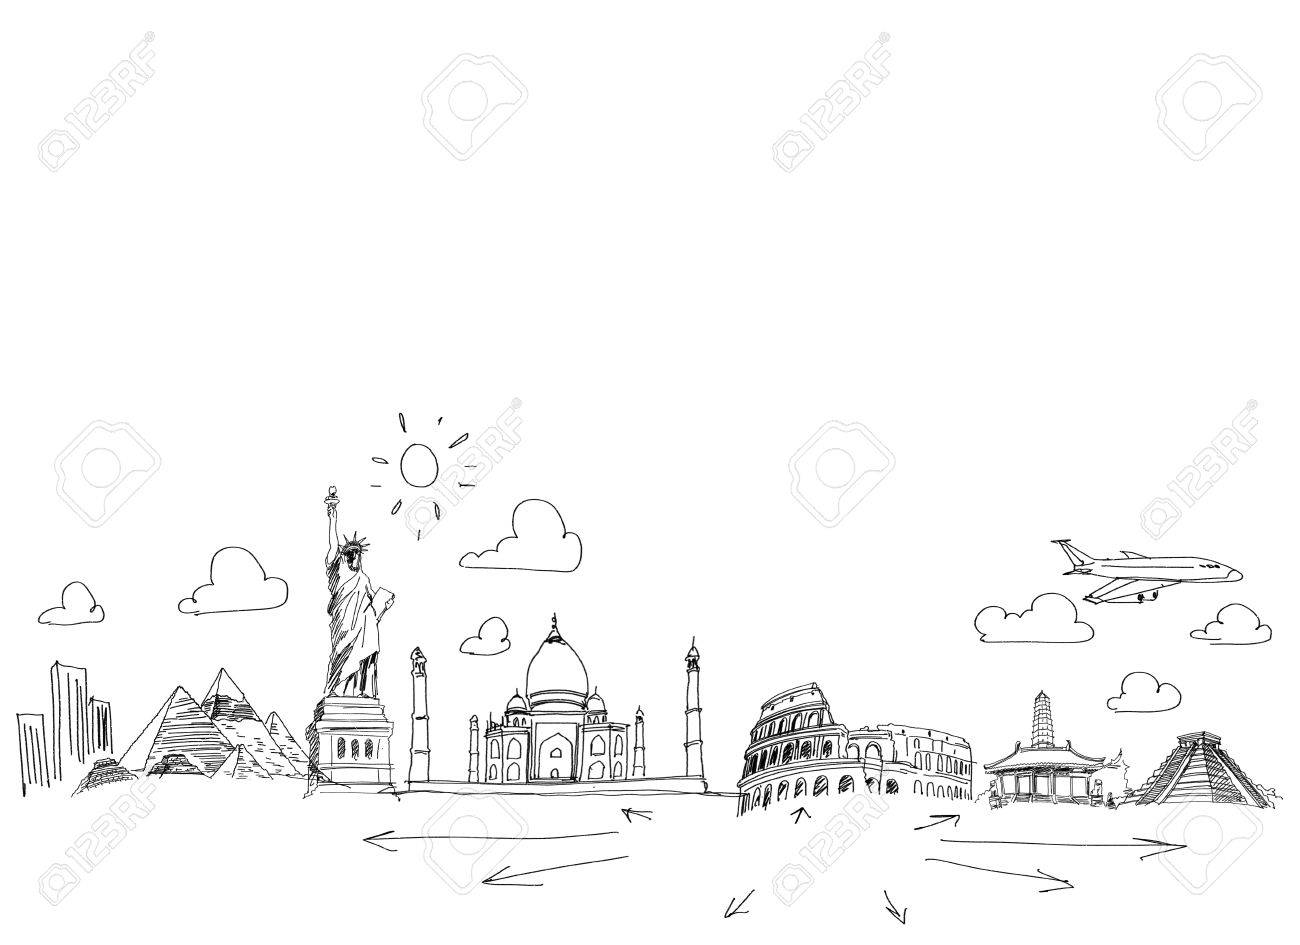 Background sketch image with drawings Travel concept - 24949239